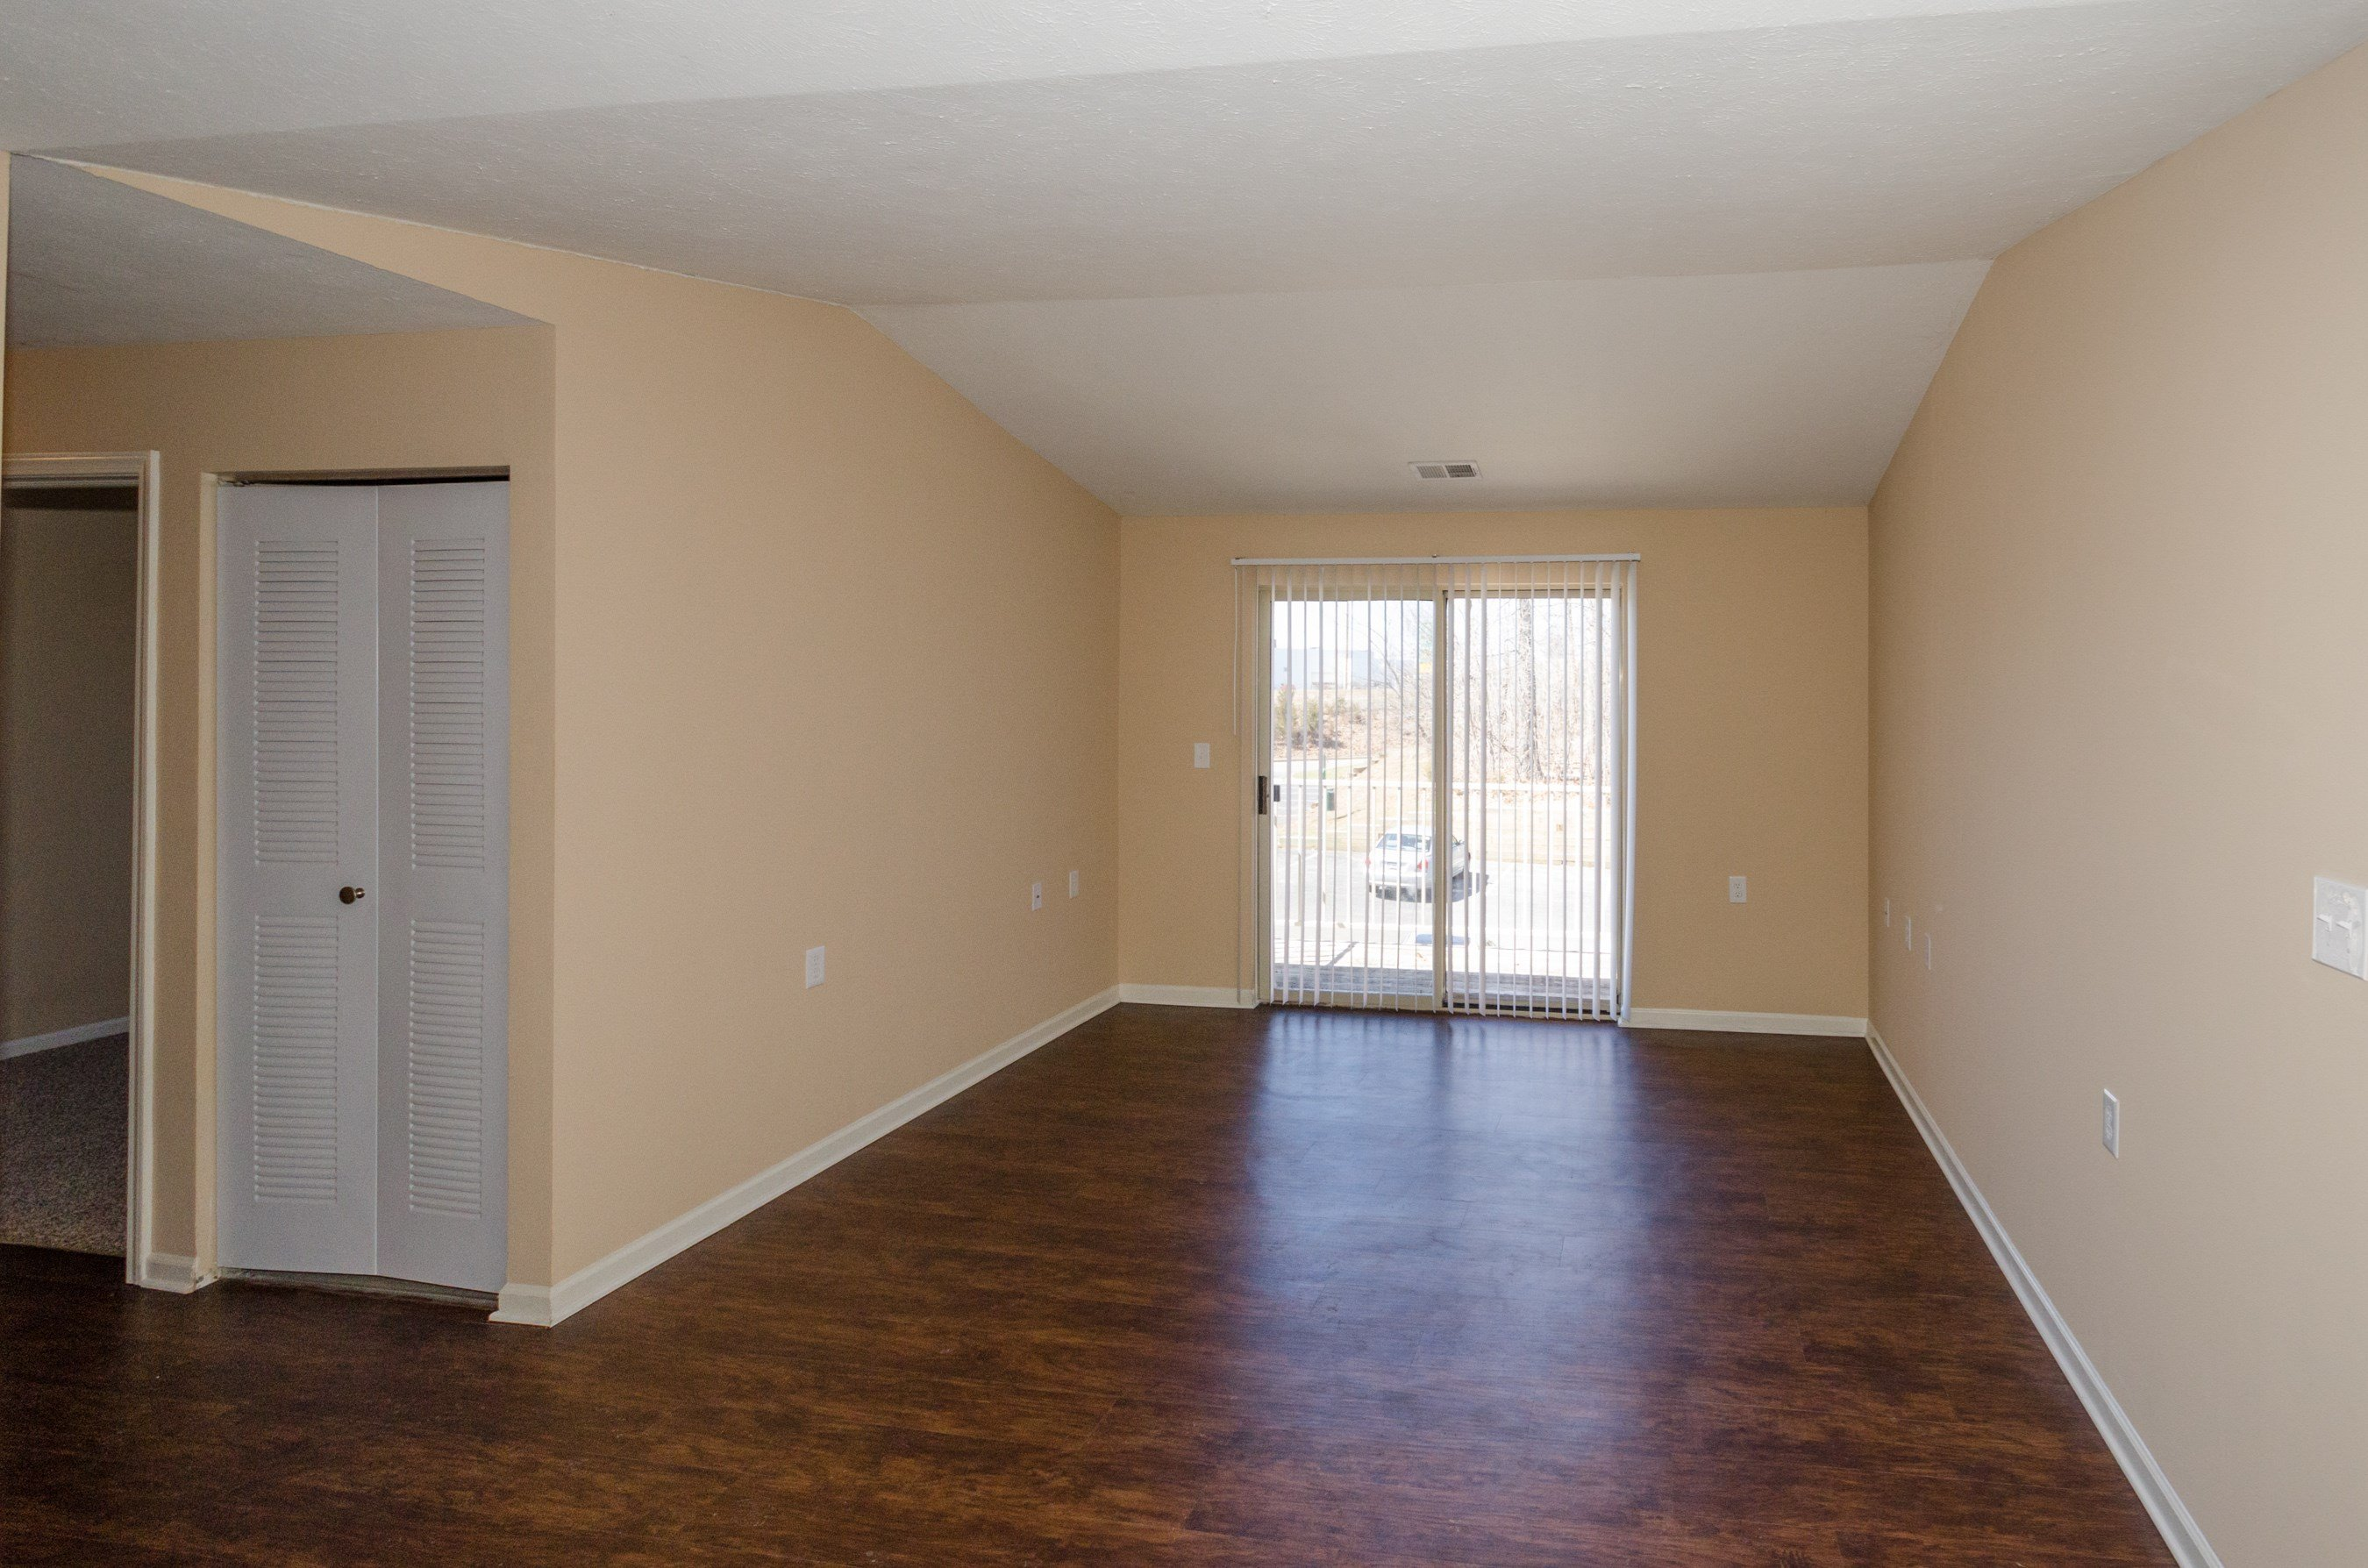 3 bedroom apartments in bloomington indiana. apartments in bloomington, 1 bedroom, 2 3 bedroom bloomington indiana l